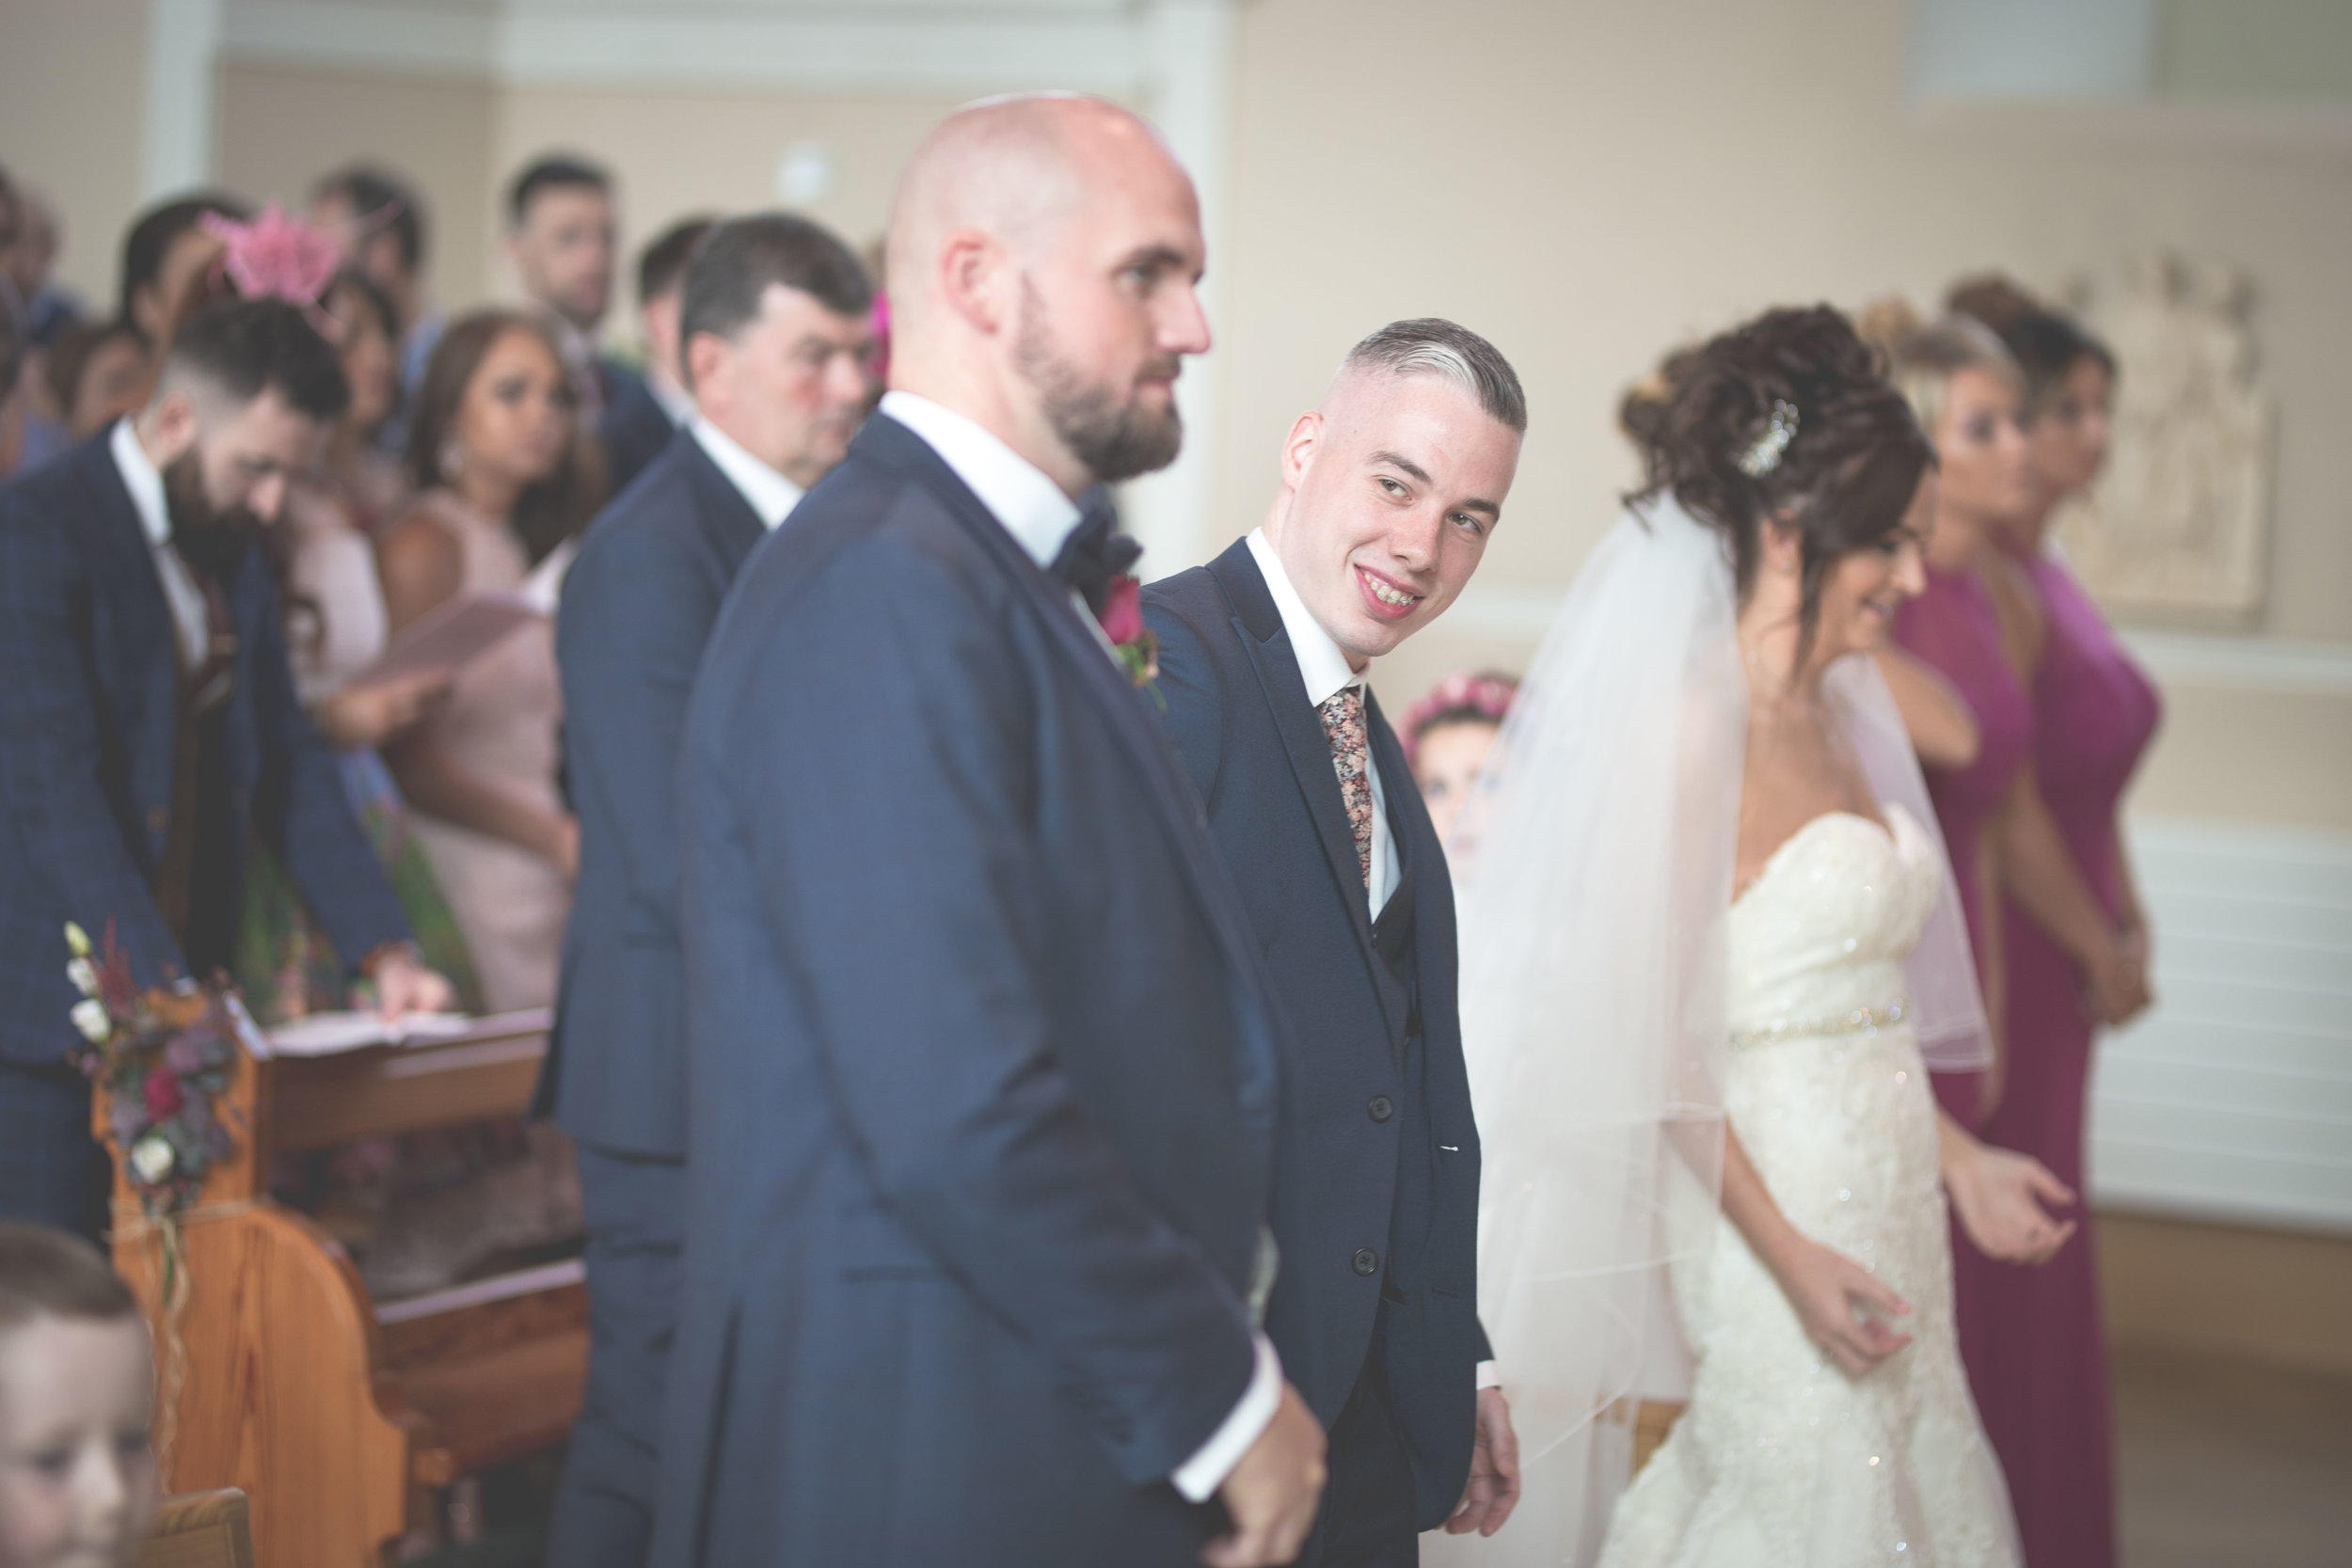 Aisling & Andy - Ceremony-47.jpg